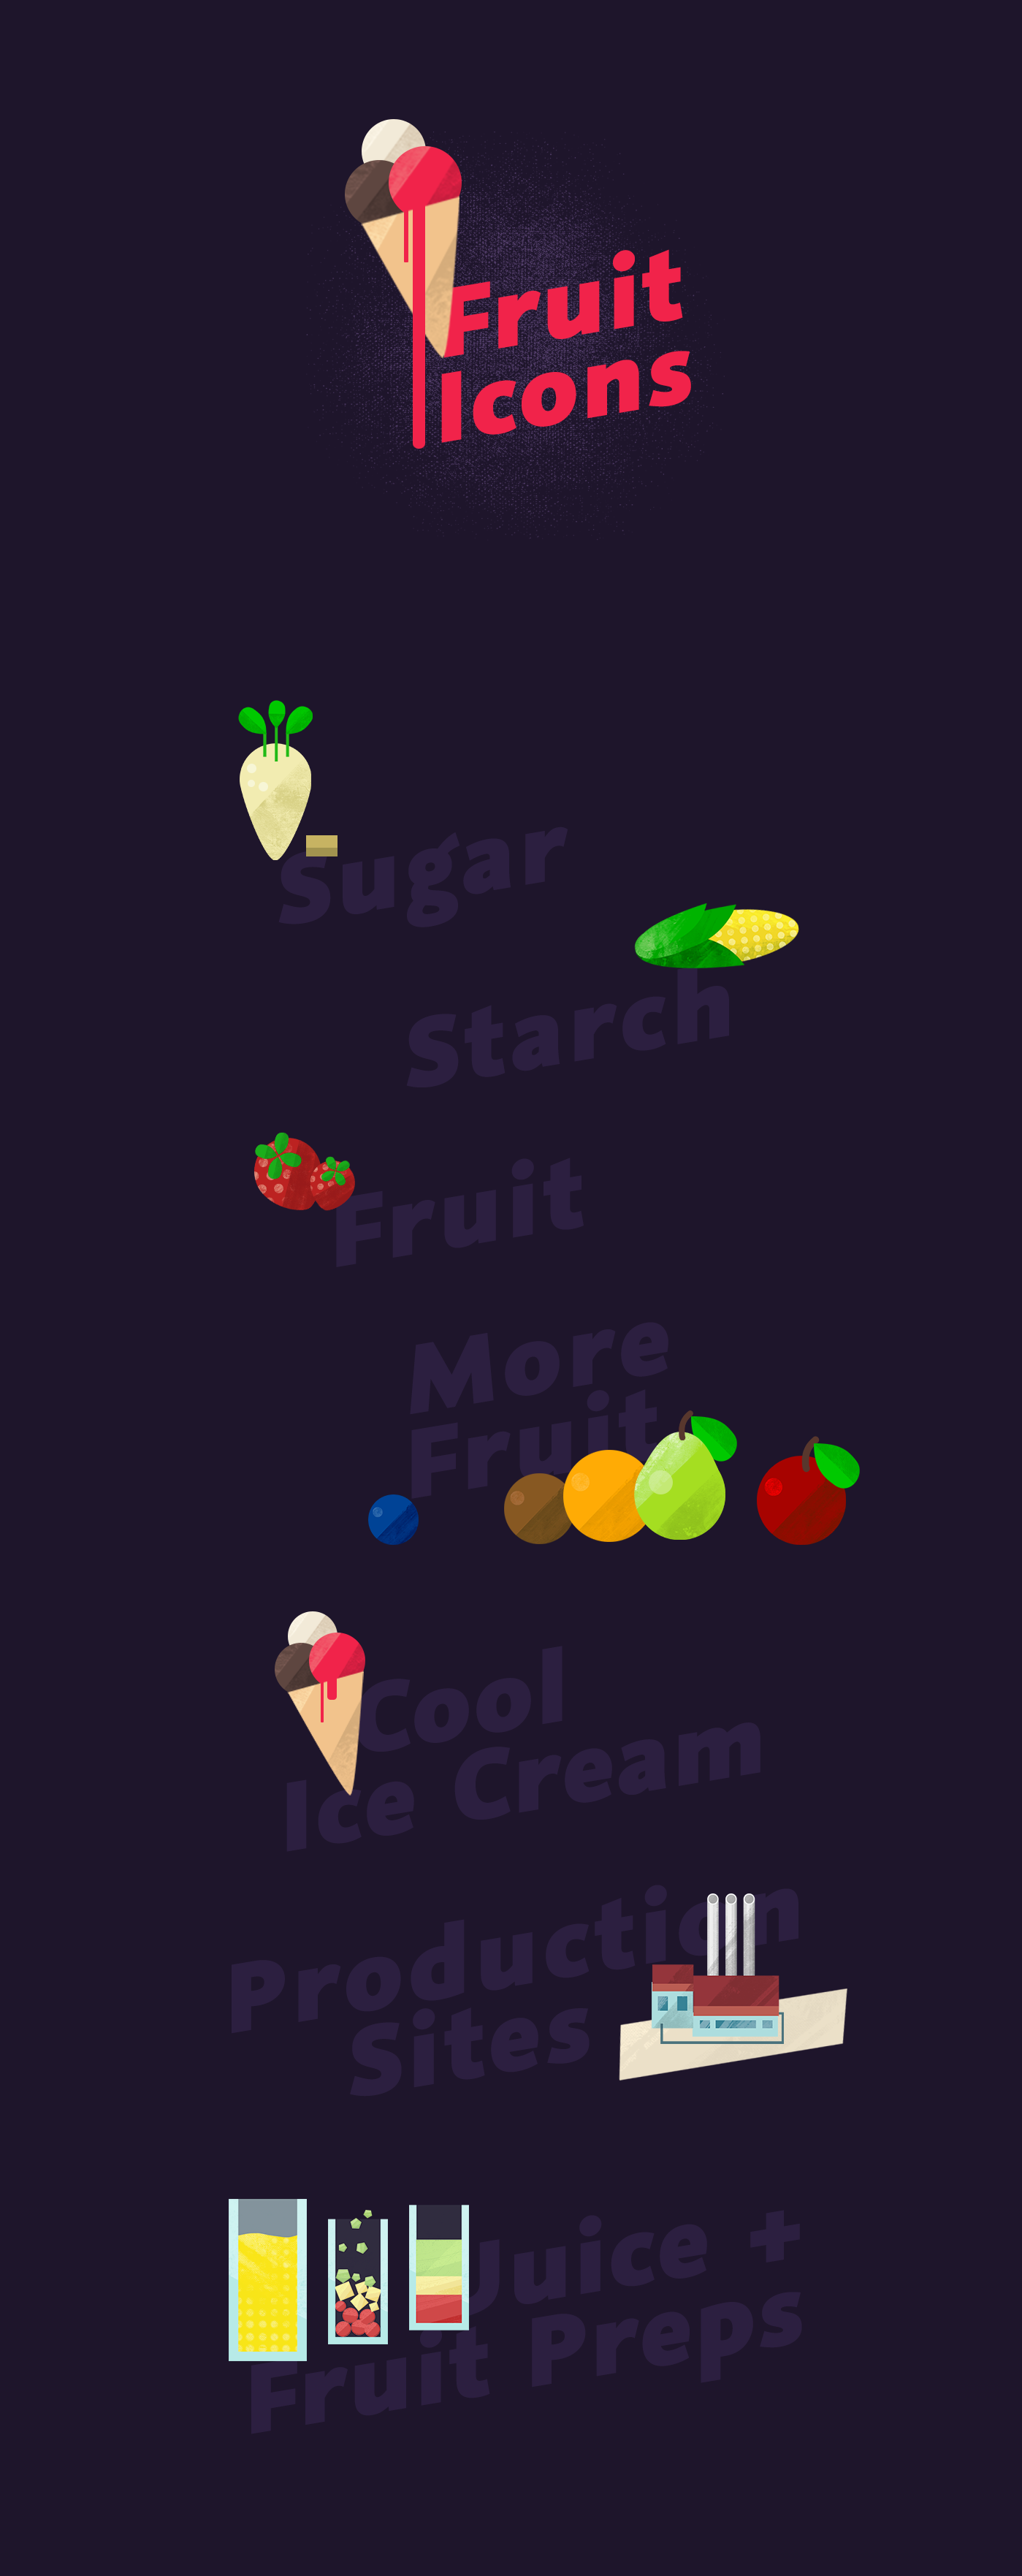 illu_agrana_fruit_2